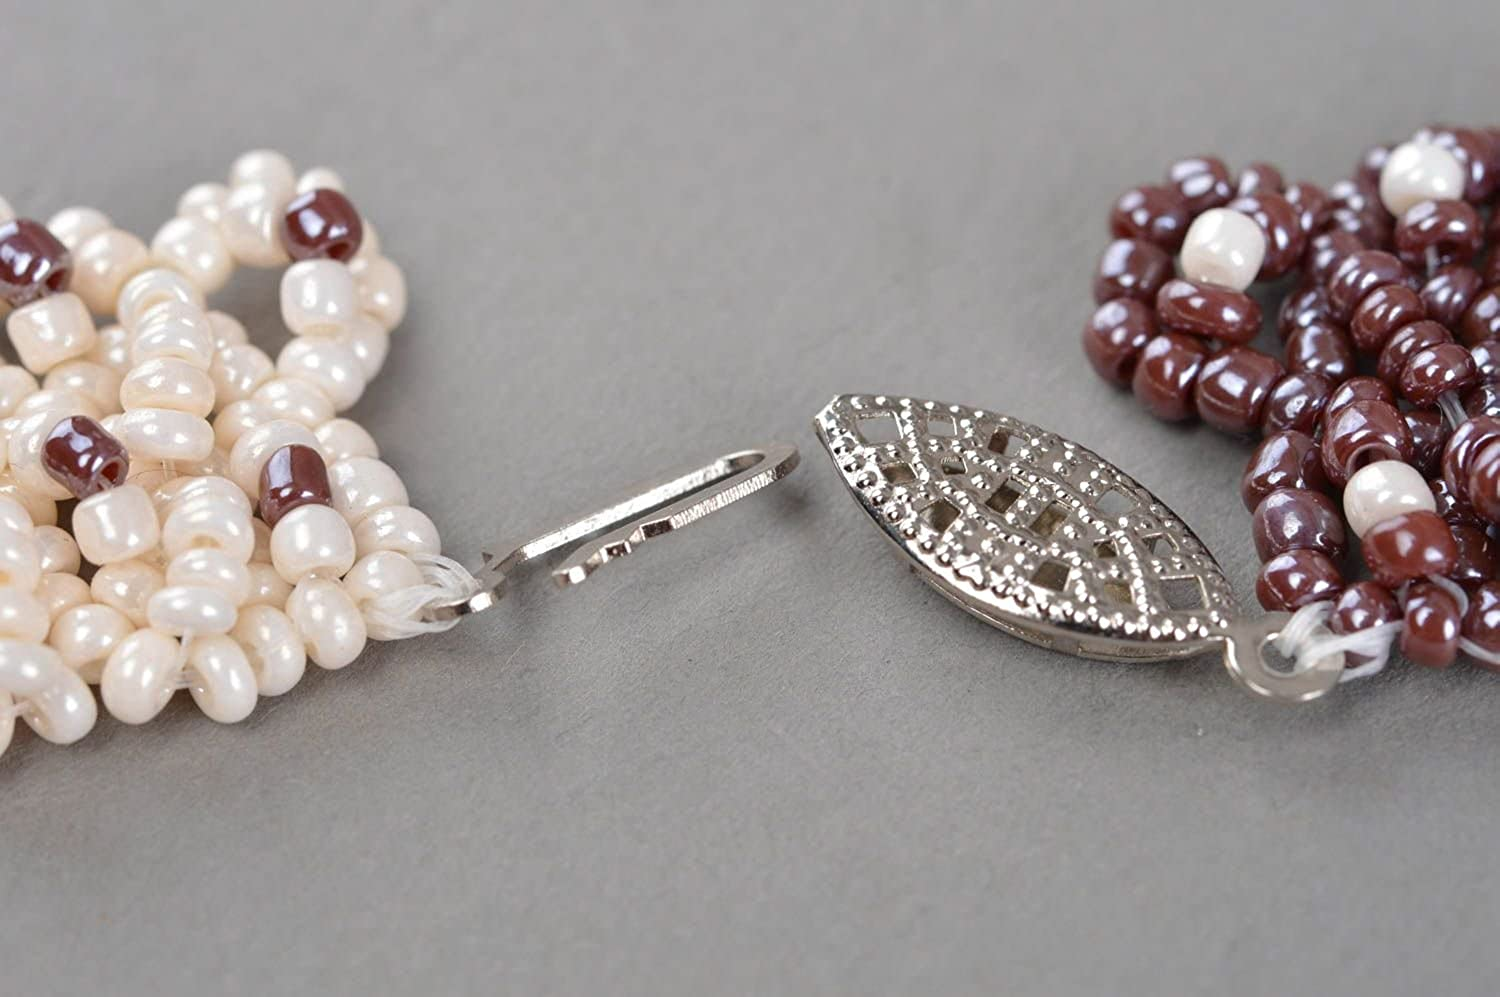 Womens Necklace Handmade Beaded Accessory Pearl Beads Jewelry Crystal Jewelry